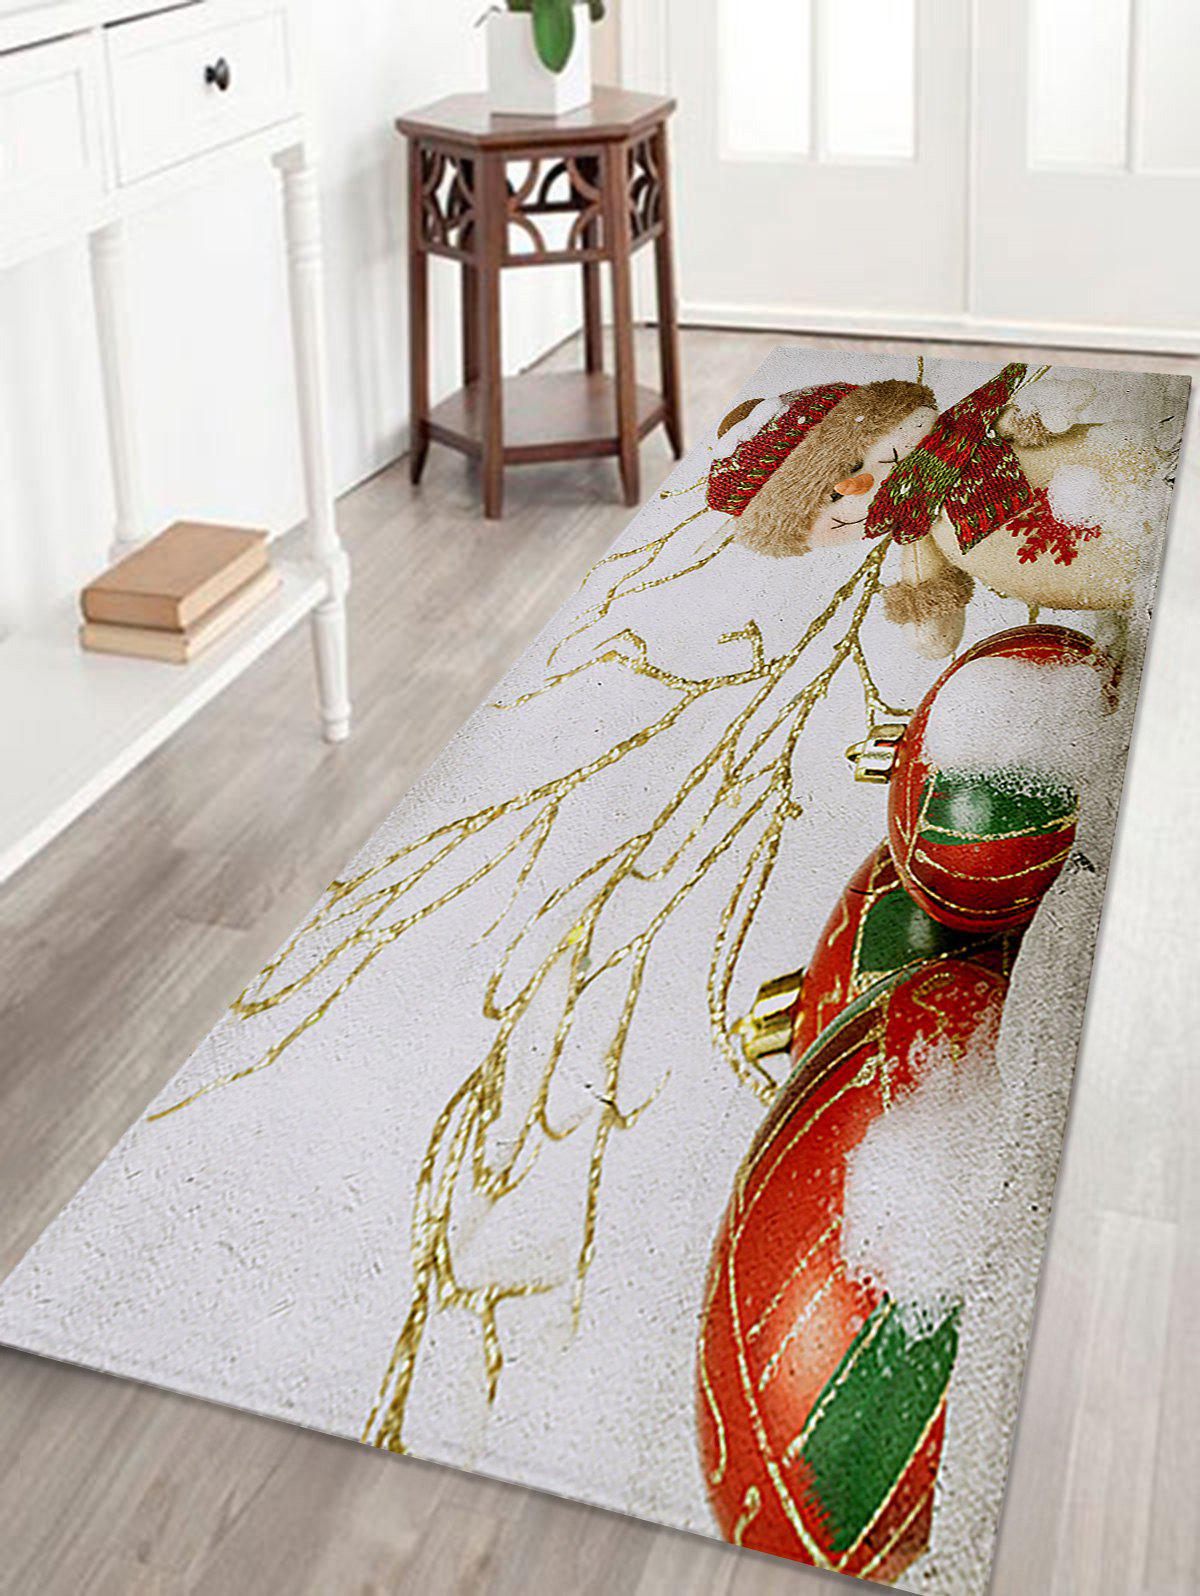 Christmas Snowman Print Coral Fleece Antislip Bath MatHOME<br><br>Size: W24 INCH * L71 INCH; Color: WHITE; Products Type: Bath rugs; Materials: Coral FLeece; Pattern: Snowman; Style: Festival; Shape: Rectangular; Package Contents: 1 x Rug;